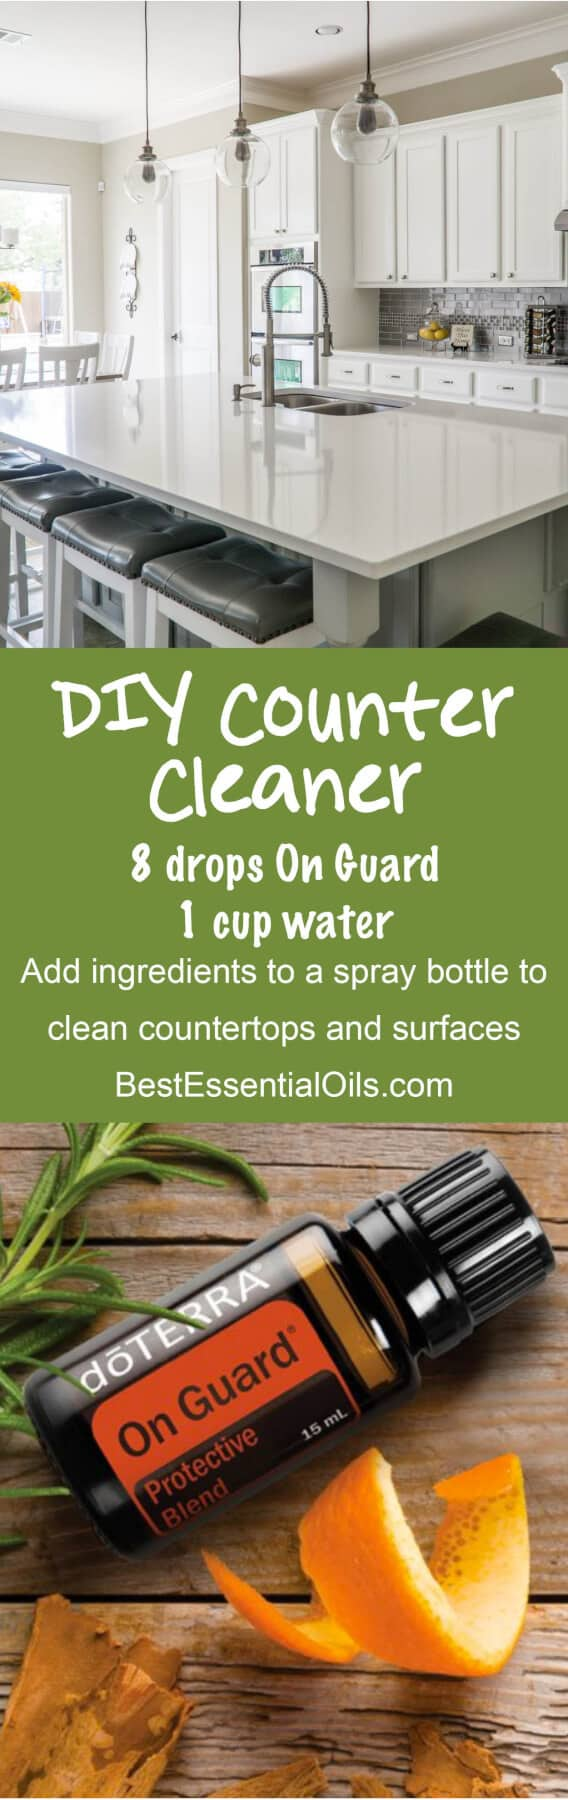 doTERRA DIY Countertop Cleaner